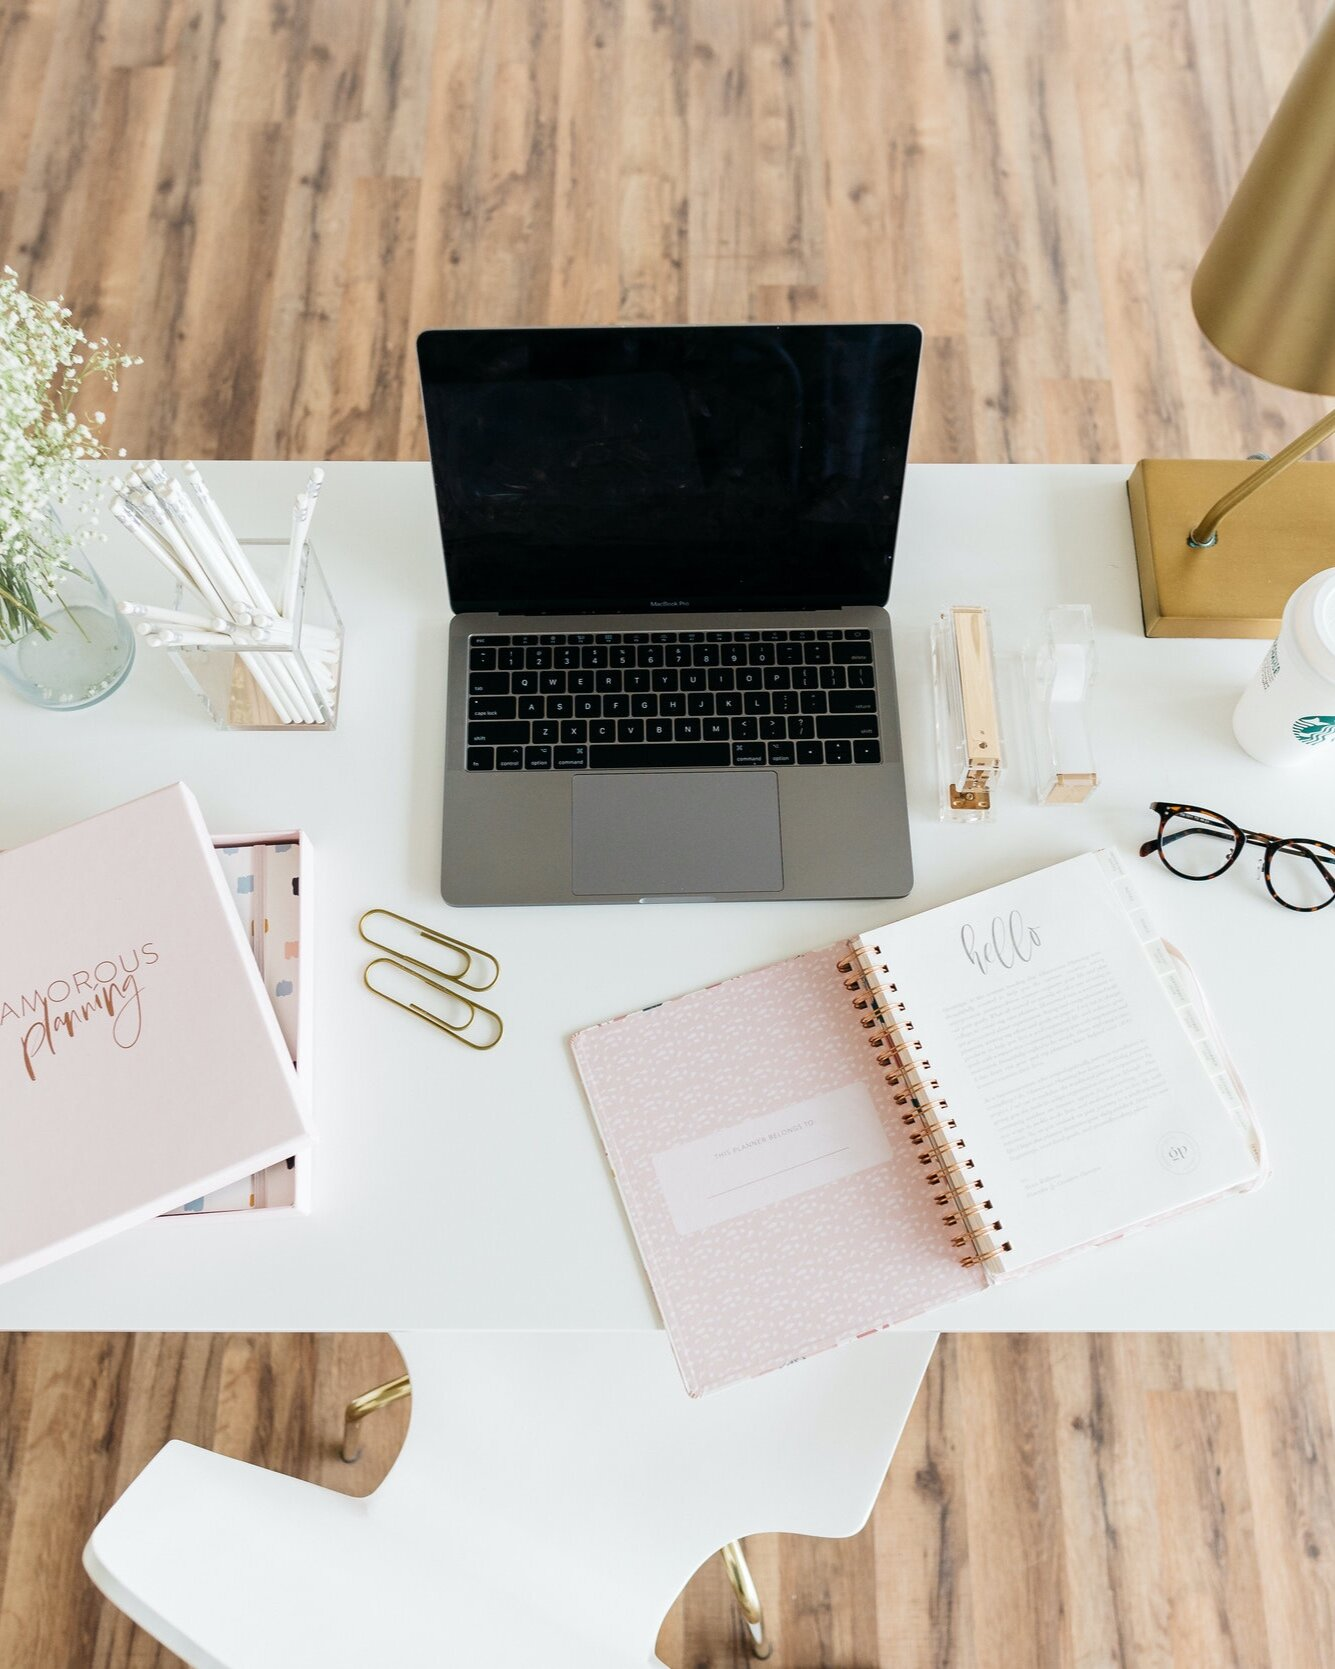 How To Work From Home and Successfully Ignore That Pile of Laundry in the Corner